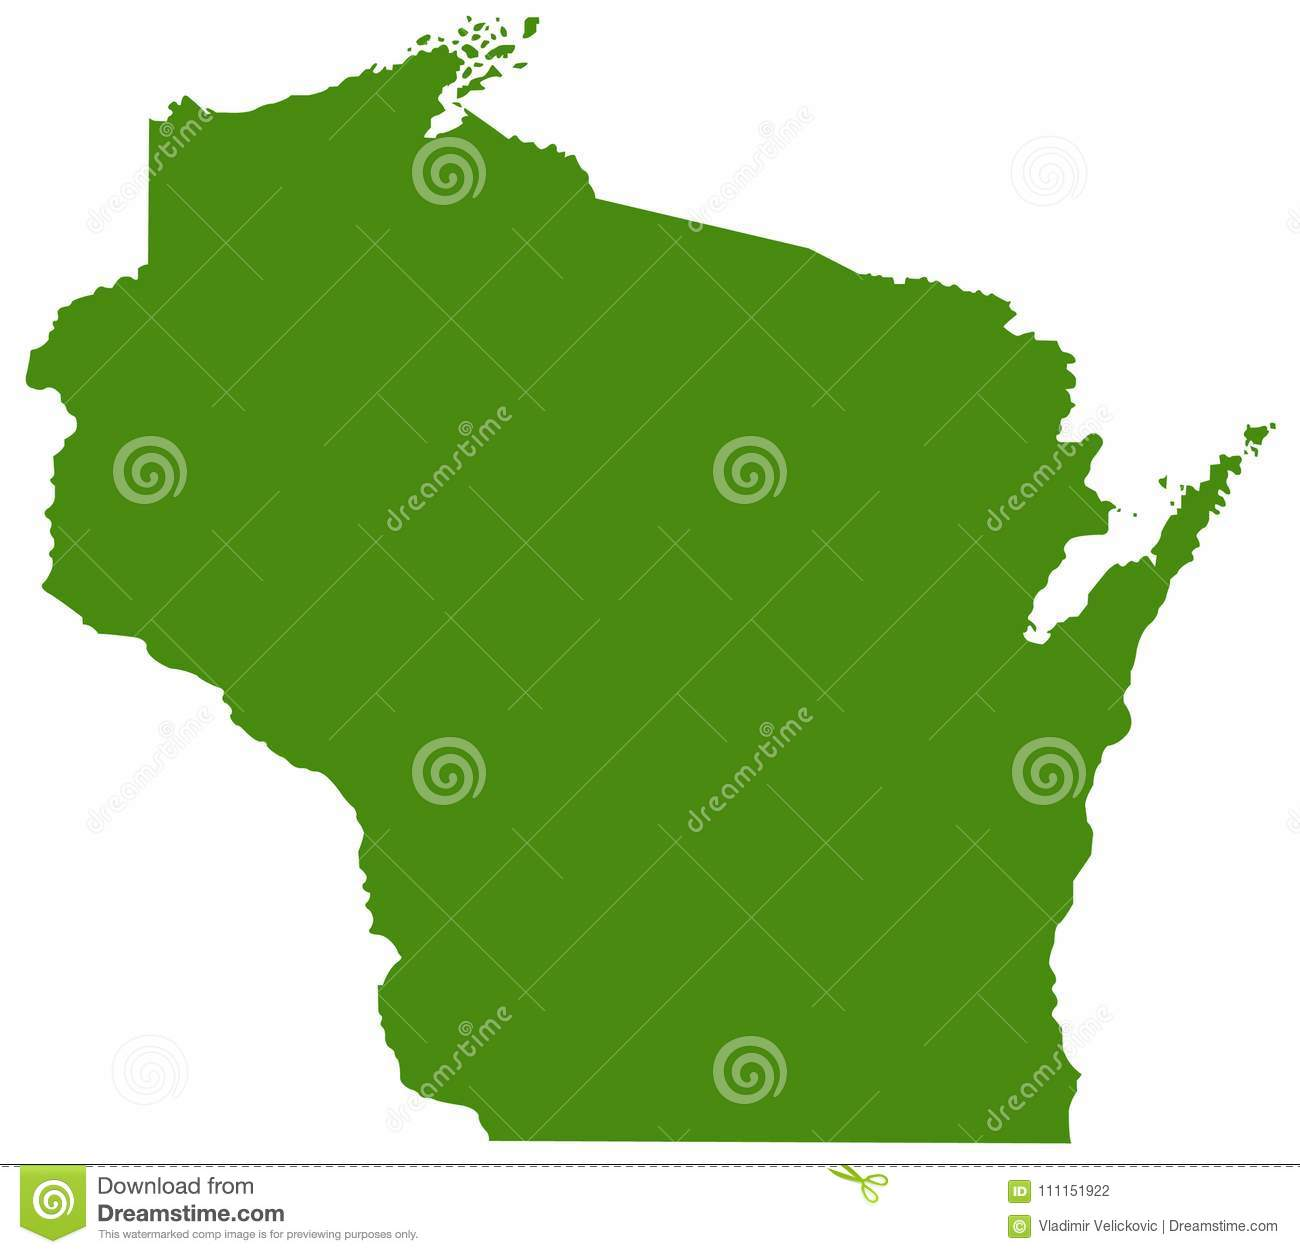 Wisconsin Map State In The North Central United States Stock